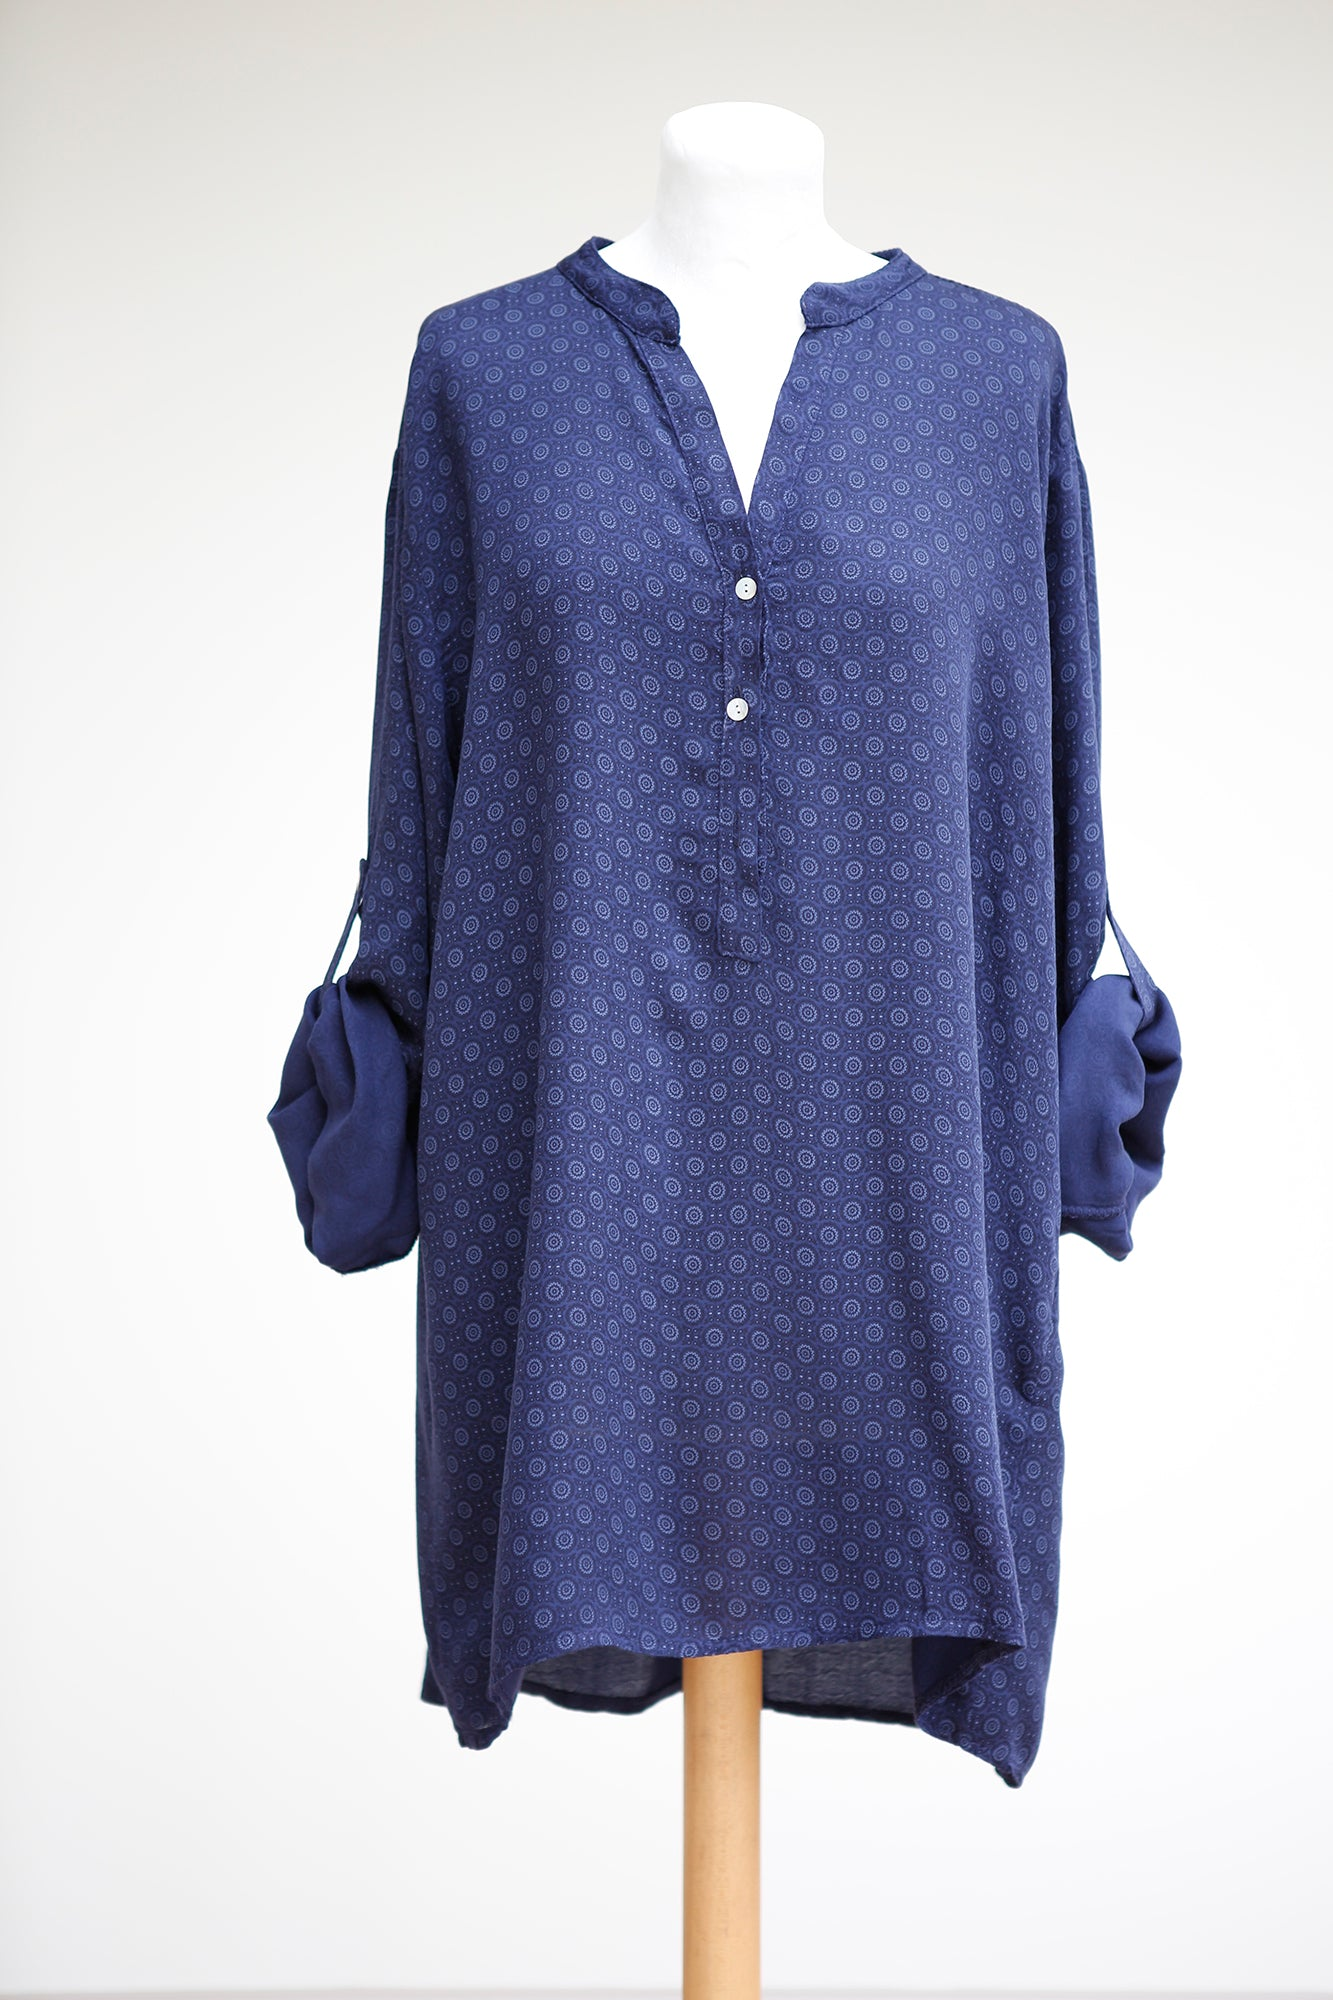 TILE PRINTED LOOSE FIT SHIRT WITH DROP BACK AND SHELL BUTTONS